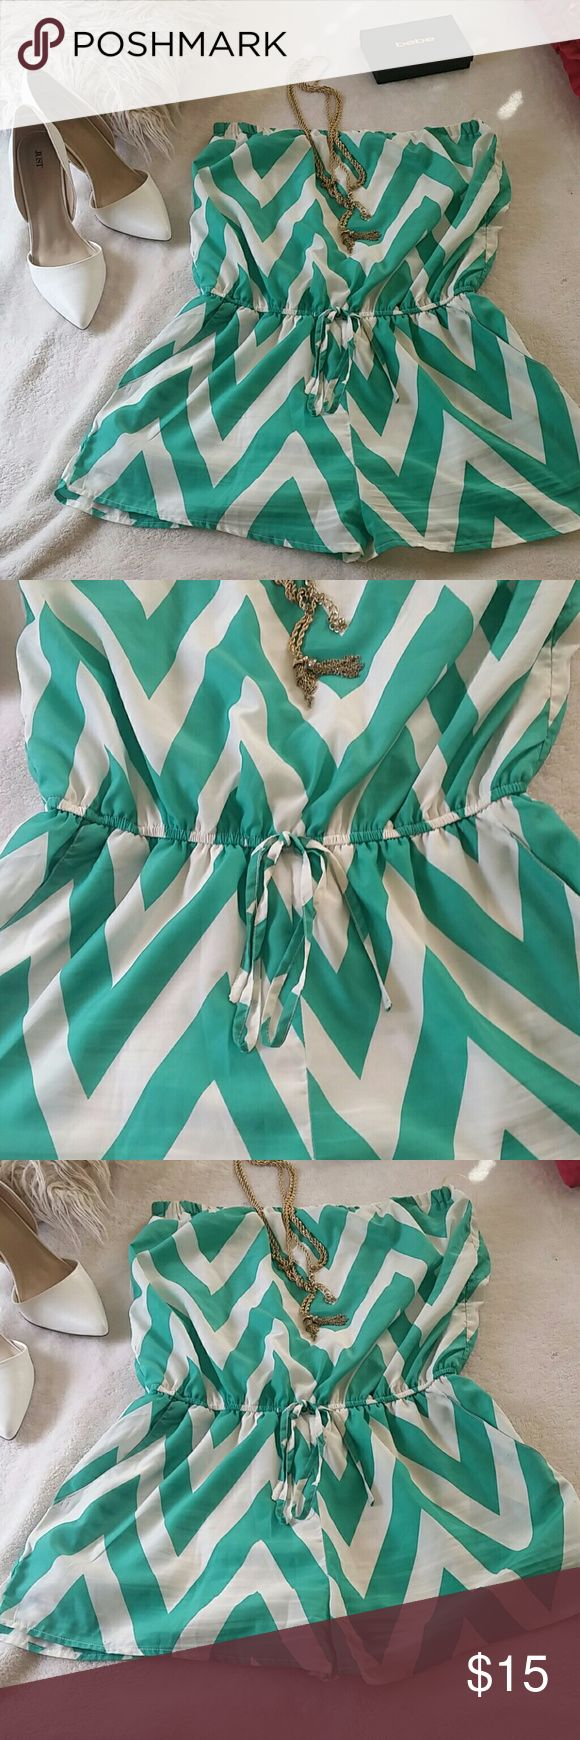 Cute shorts romper Very cute white and mint shorts romper style with cute sandals or heels any way very cute a'gaci Shorts